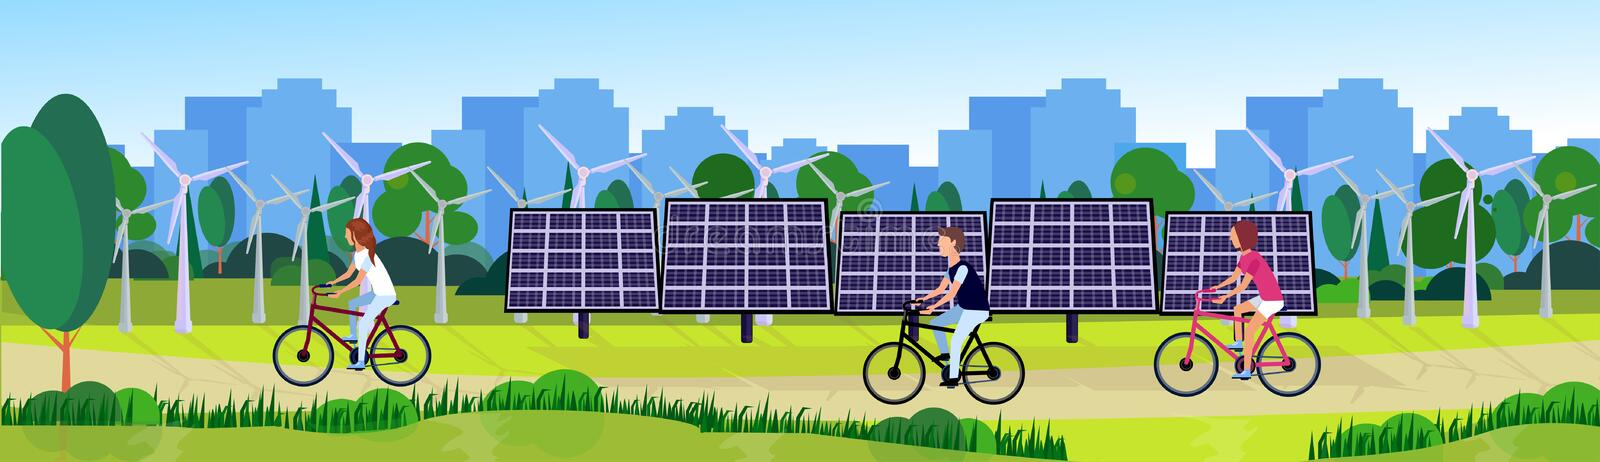 City park people cycling clean energy wind turbines solar energy panels river green lawn trees on city buildings stock illustration